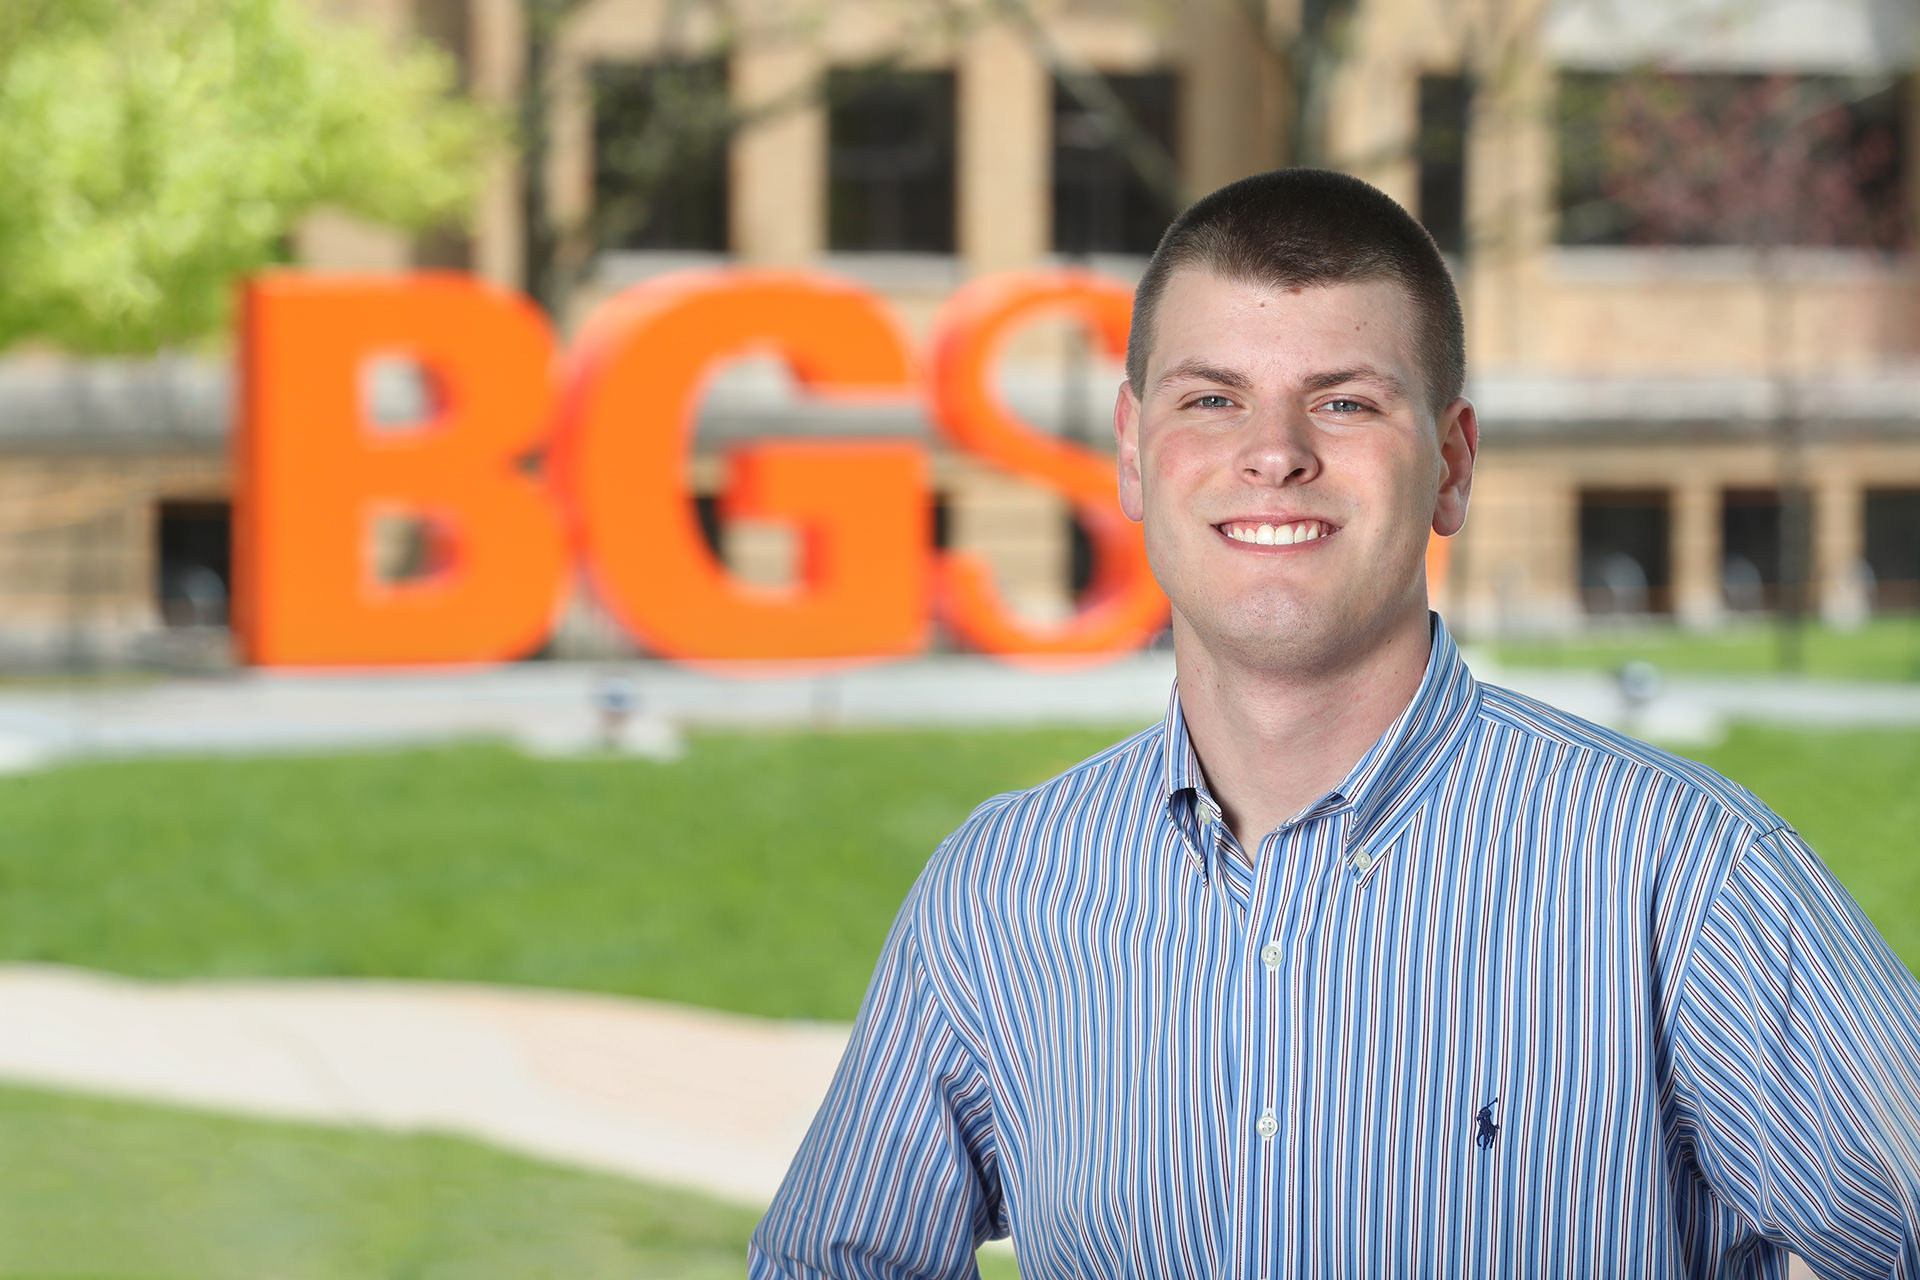 Class of 2019 Success Stories: BGSU graduate David Chalupsky credits College of Business for landing job at Google